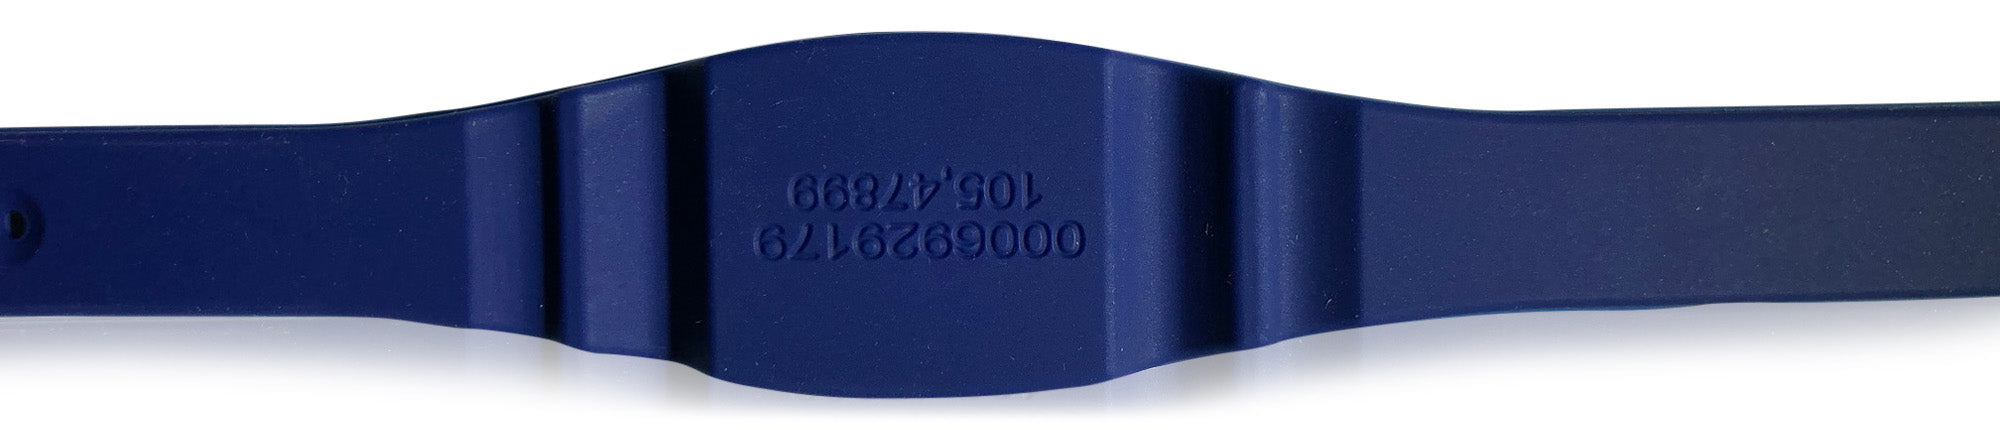 2 Dark Blue Adjustable 26 Bit Proximity Wristbands